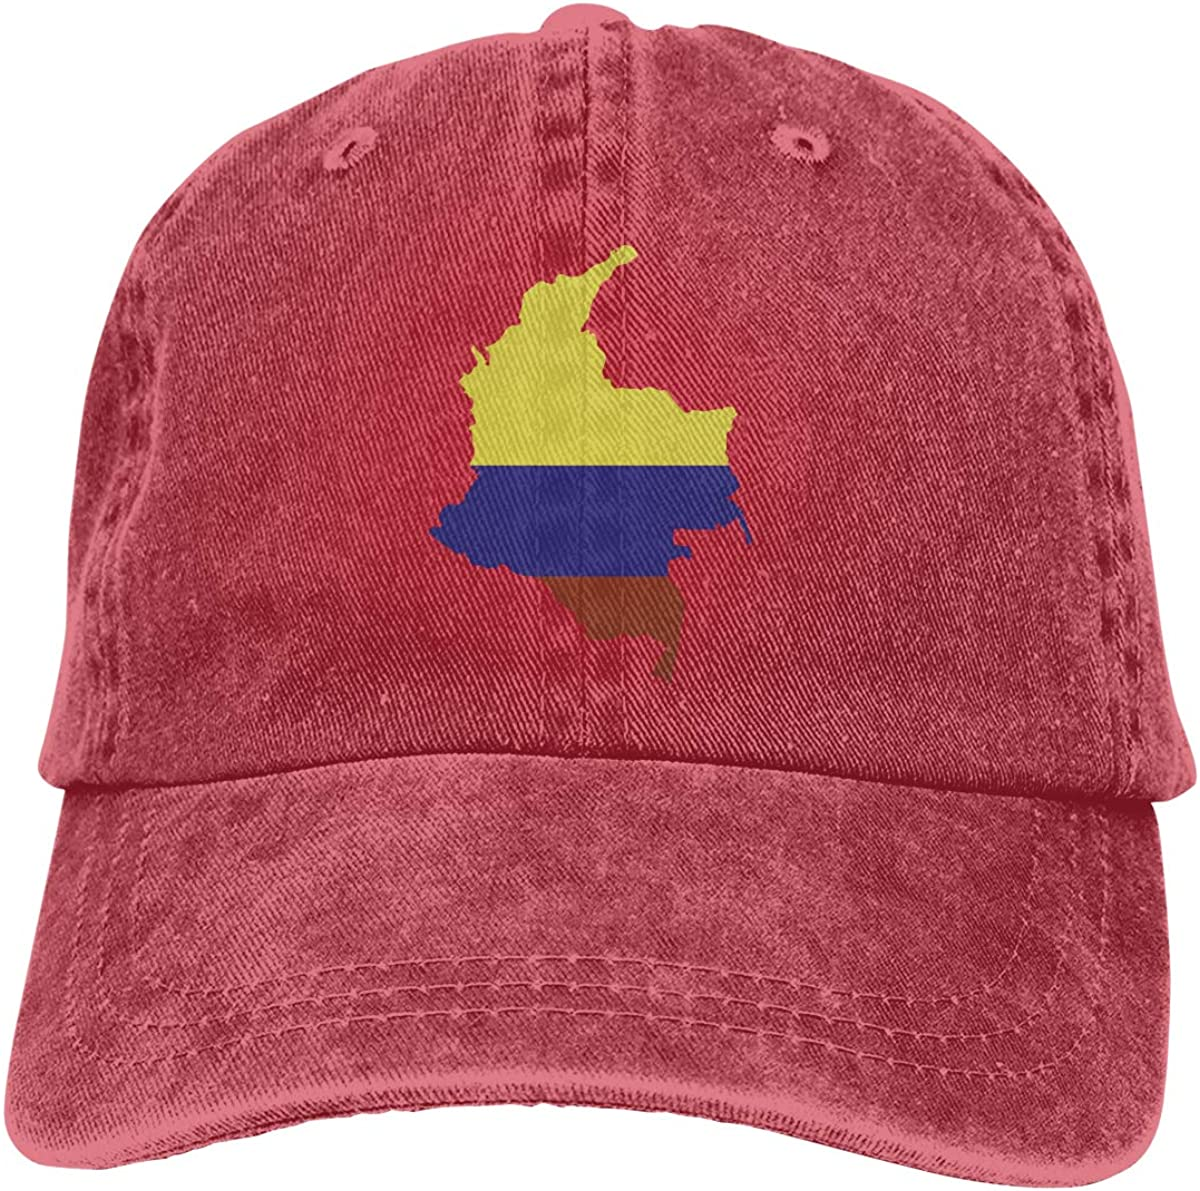 ASDGEGASFAS Baseball Cap Flag Map of Colombia Cotton Adjustable Peaked Dyed Cap Washed Cowboy Hat